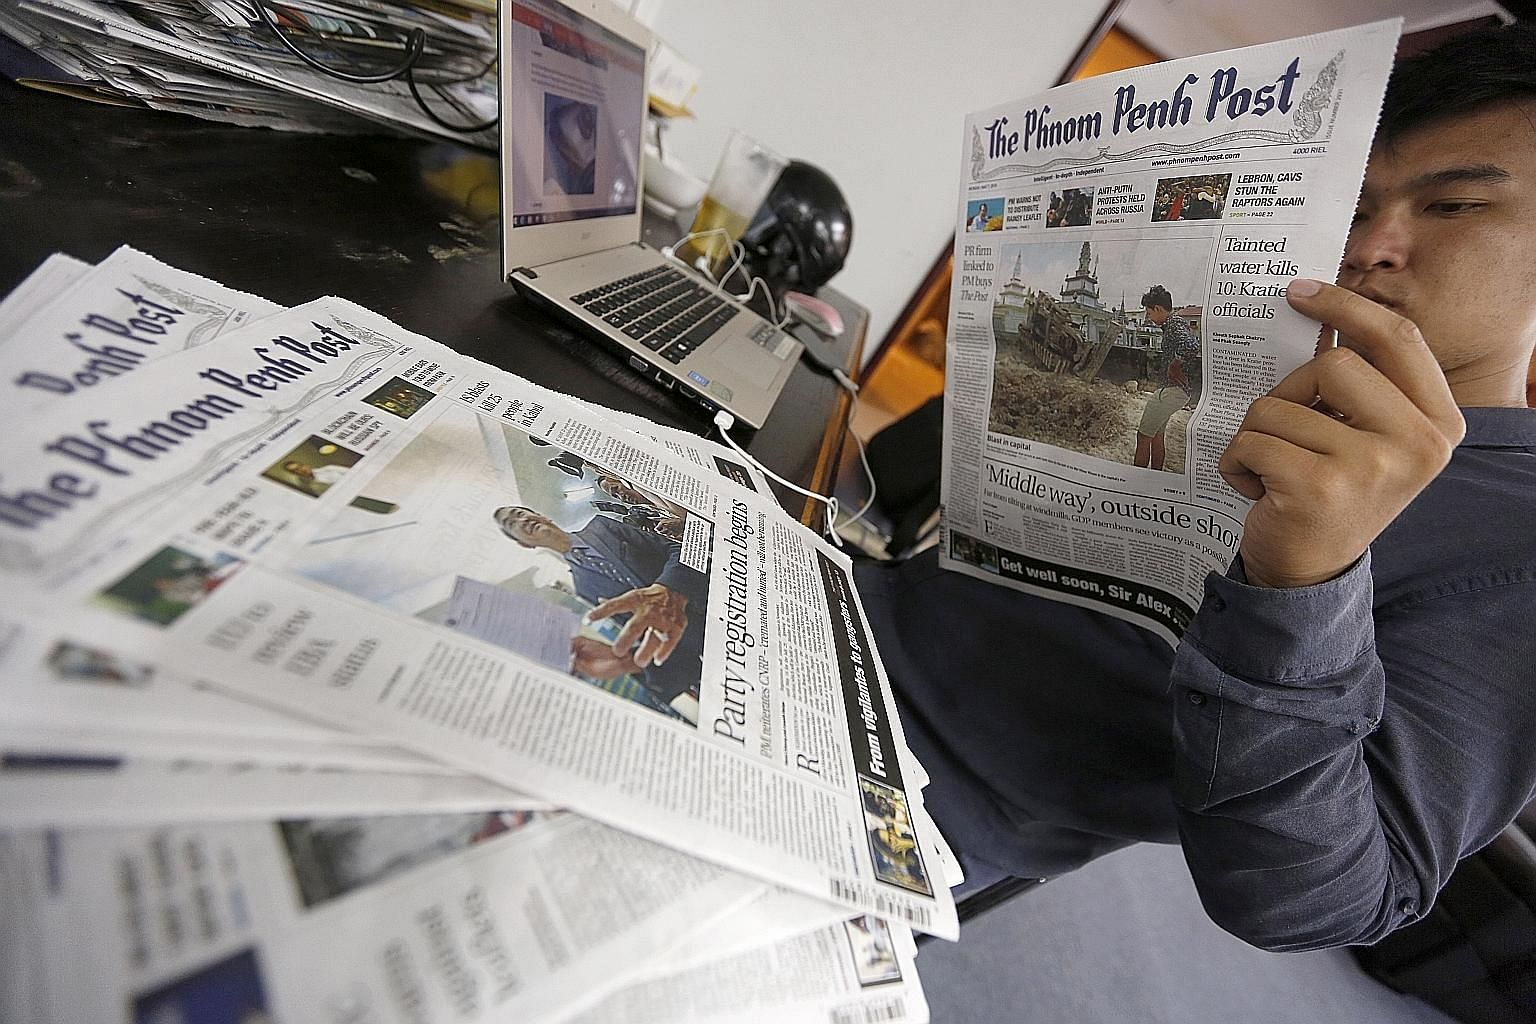 Founded in 1992, the English-language Phnom Penh Post has built a reputation for independent reporting that can be critical of the government on issues such as illegal logging and corruption.